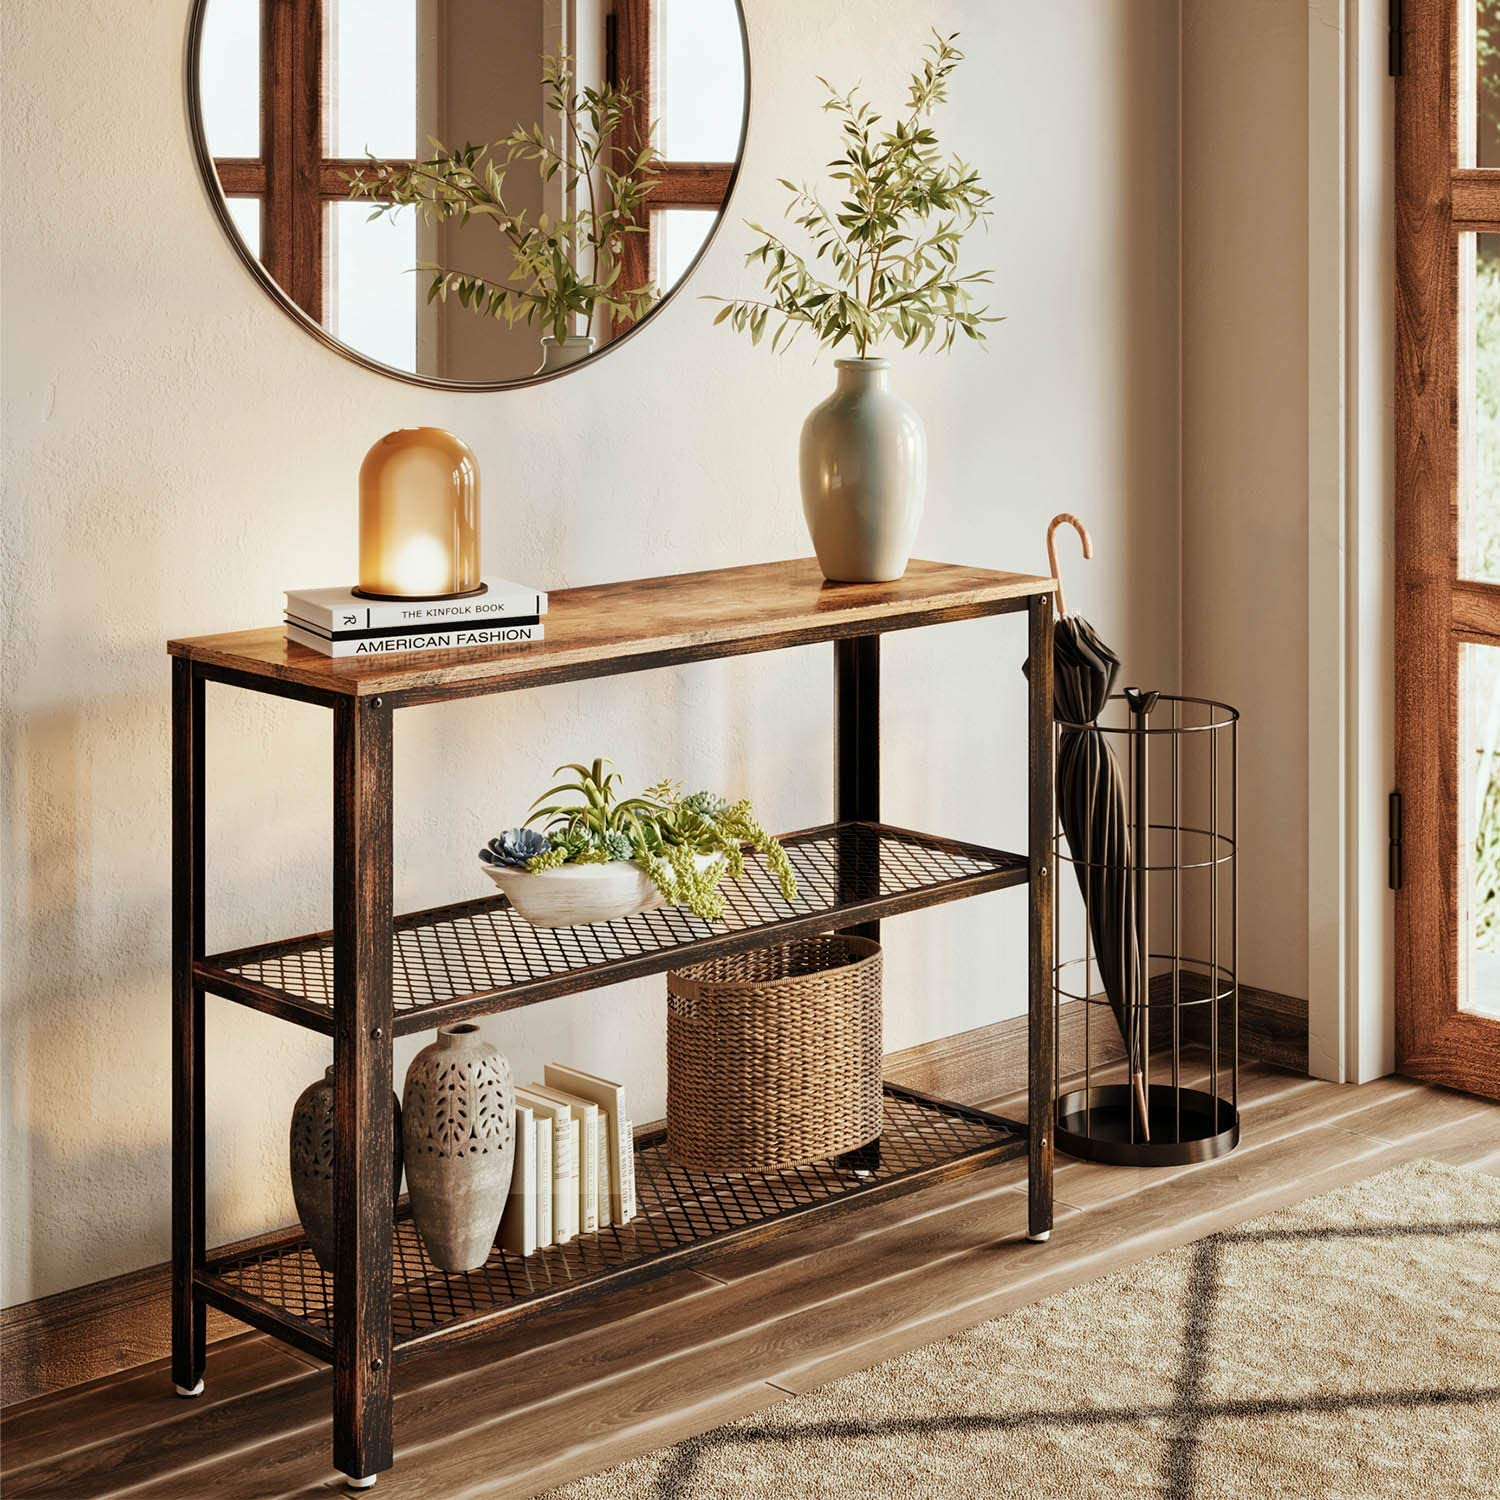 Amazon Com Rolanstar Console Table Rustic Sofa Table With 2 Mesh Shelves Entryway Table With Retro Metal Frame For Entryway Living Room Kitchen Dining